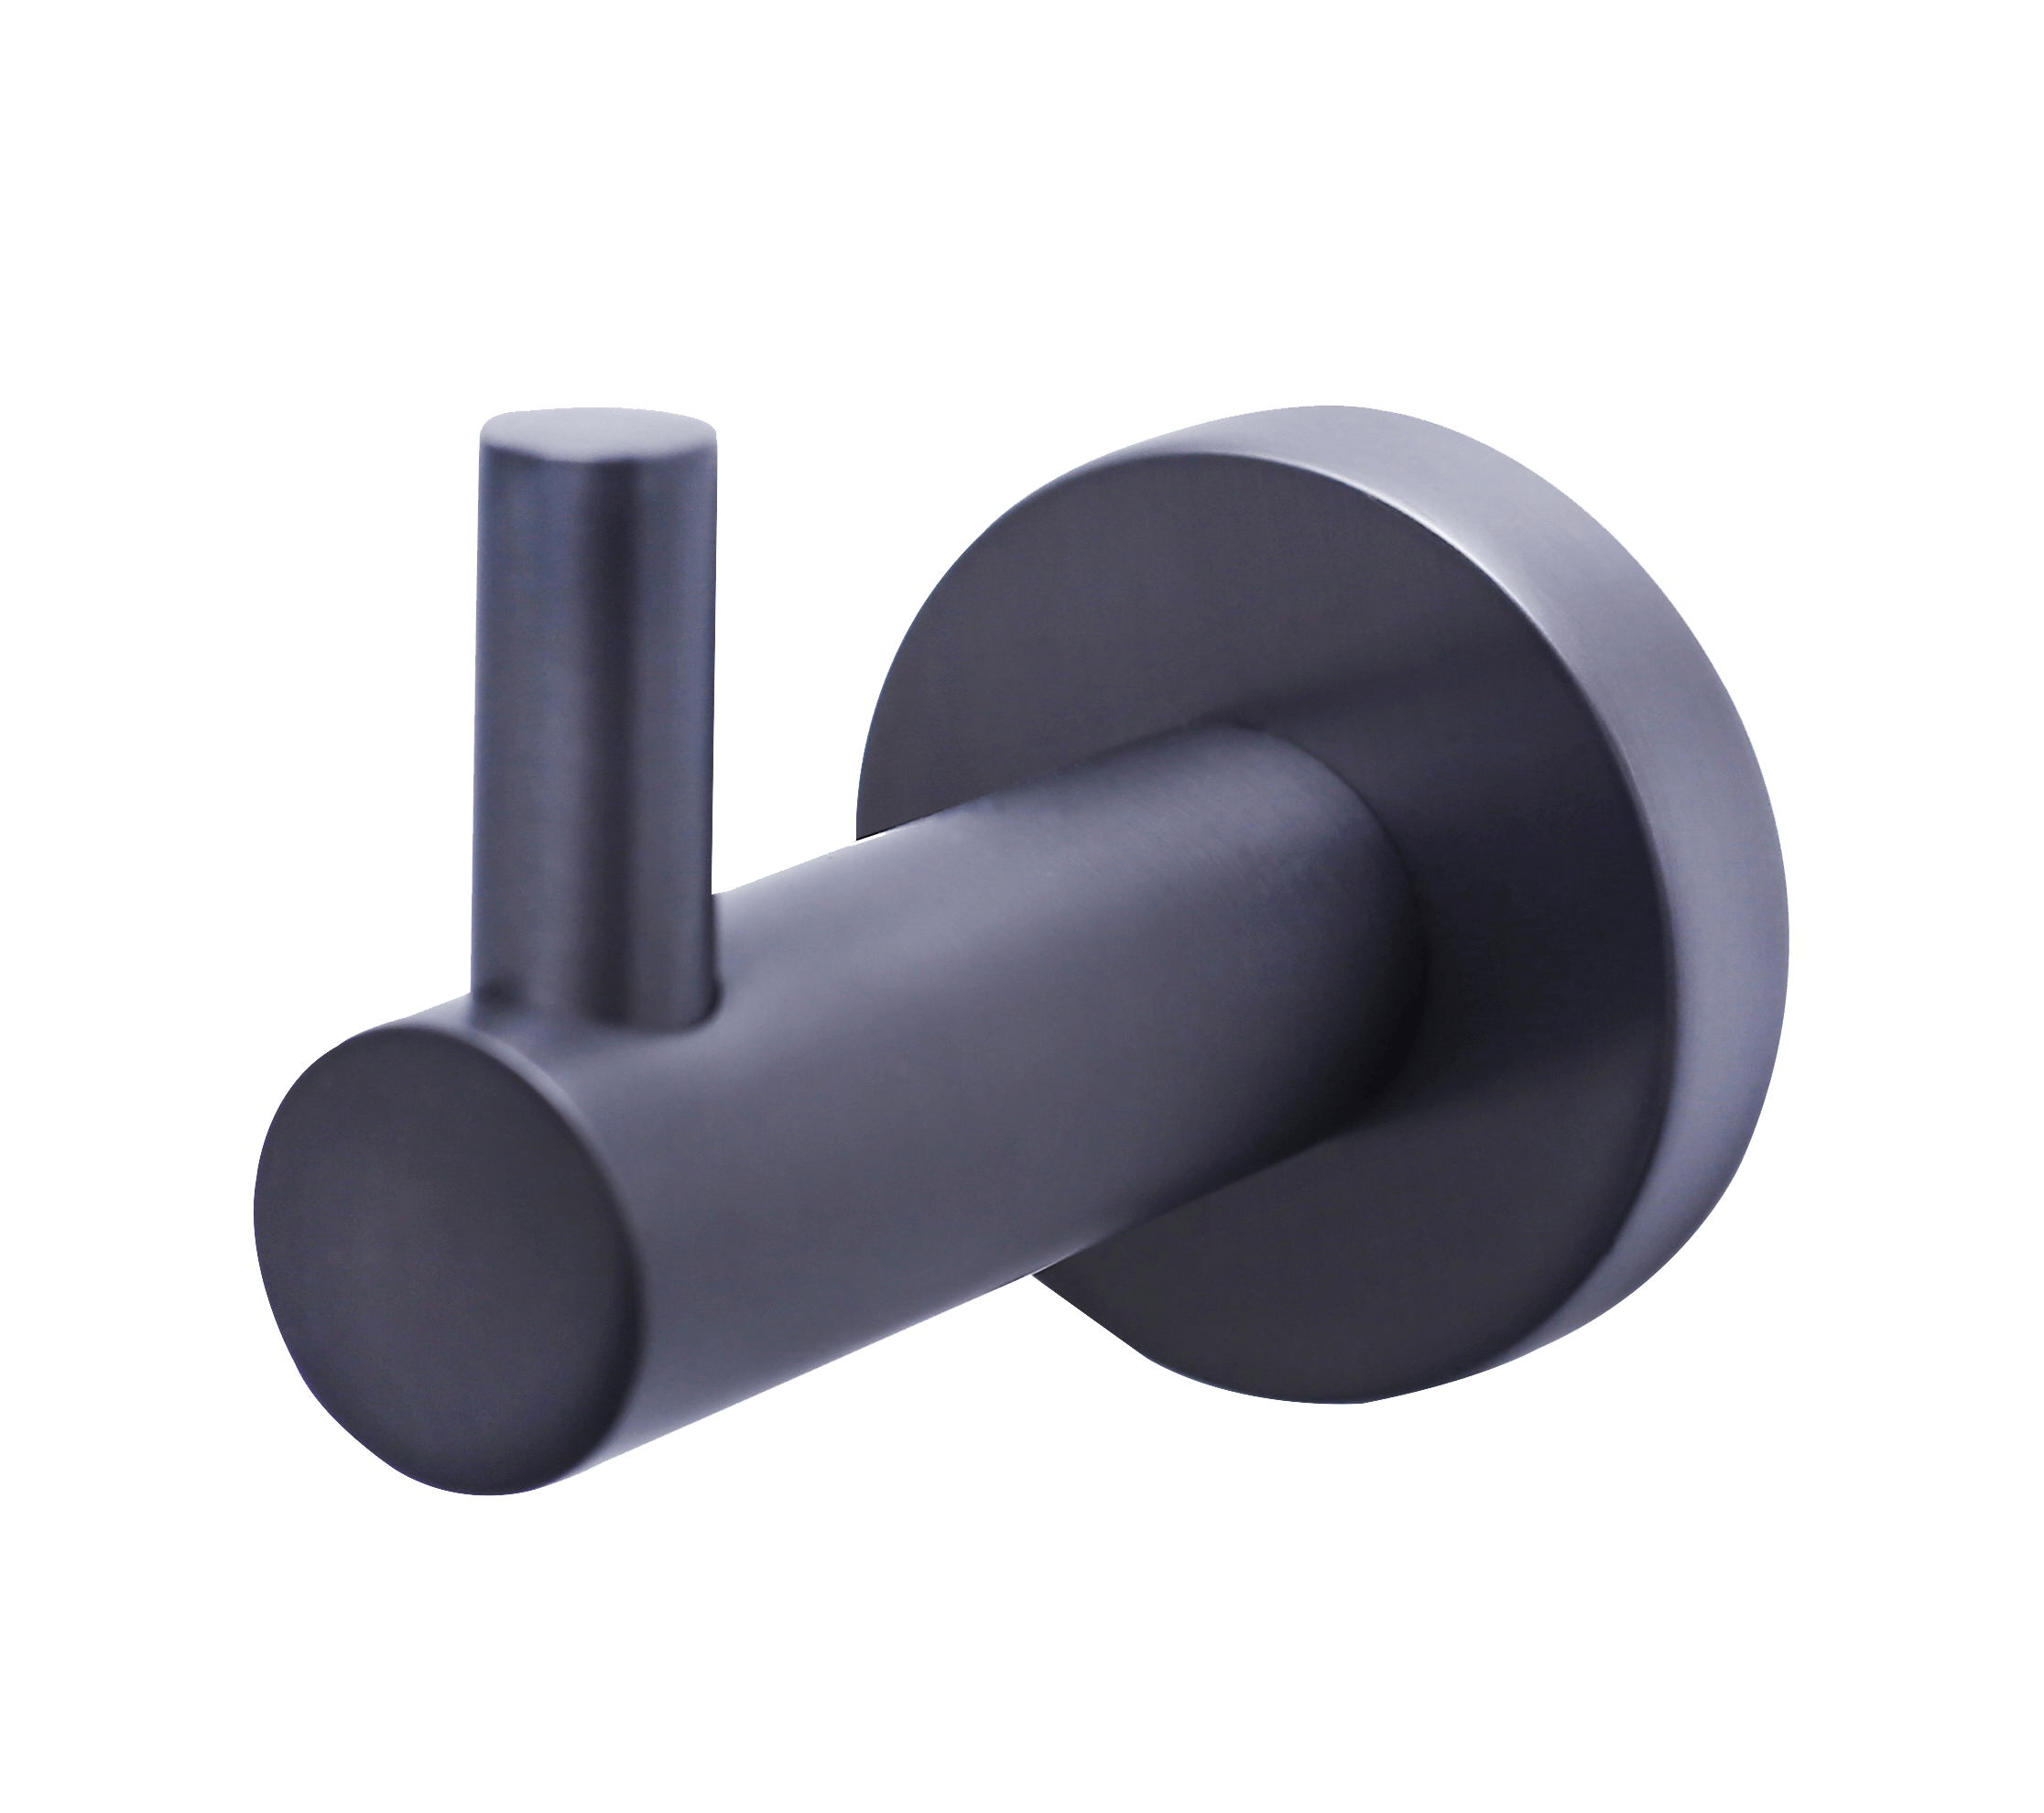 Mirage Single Robe Hook - Gun Metal